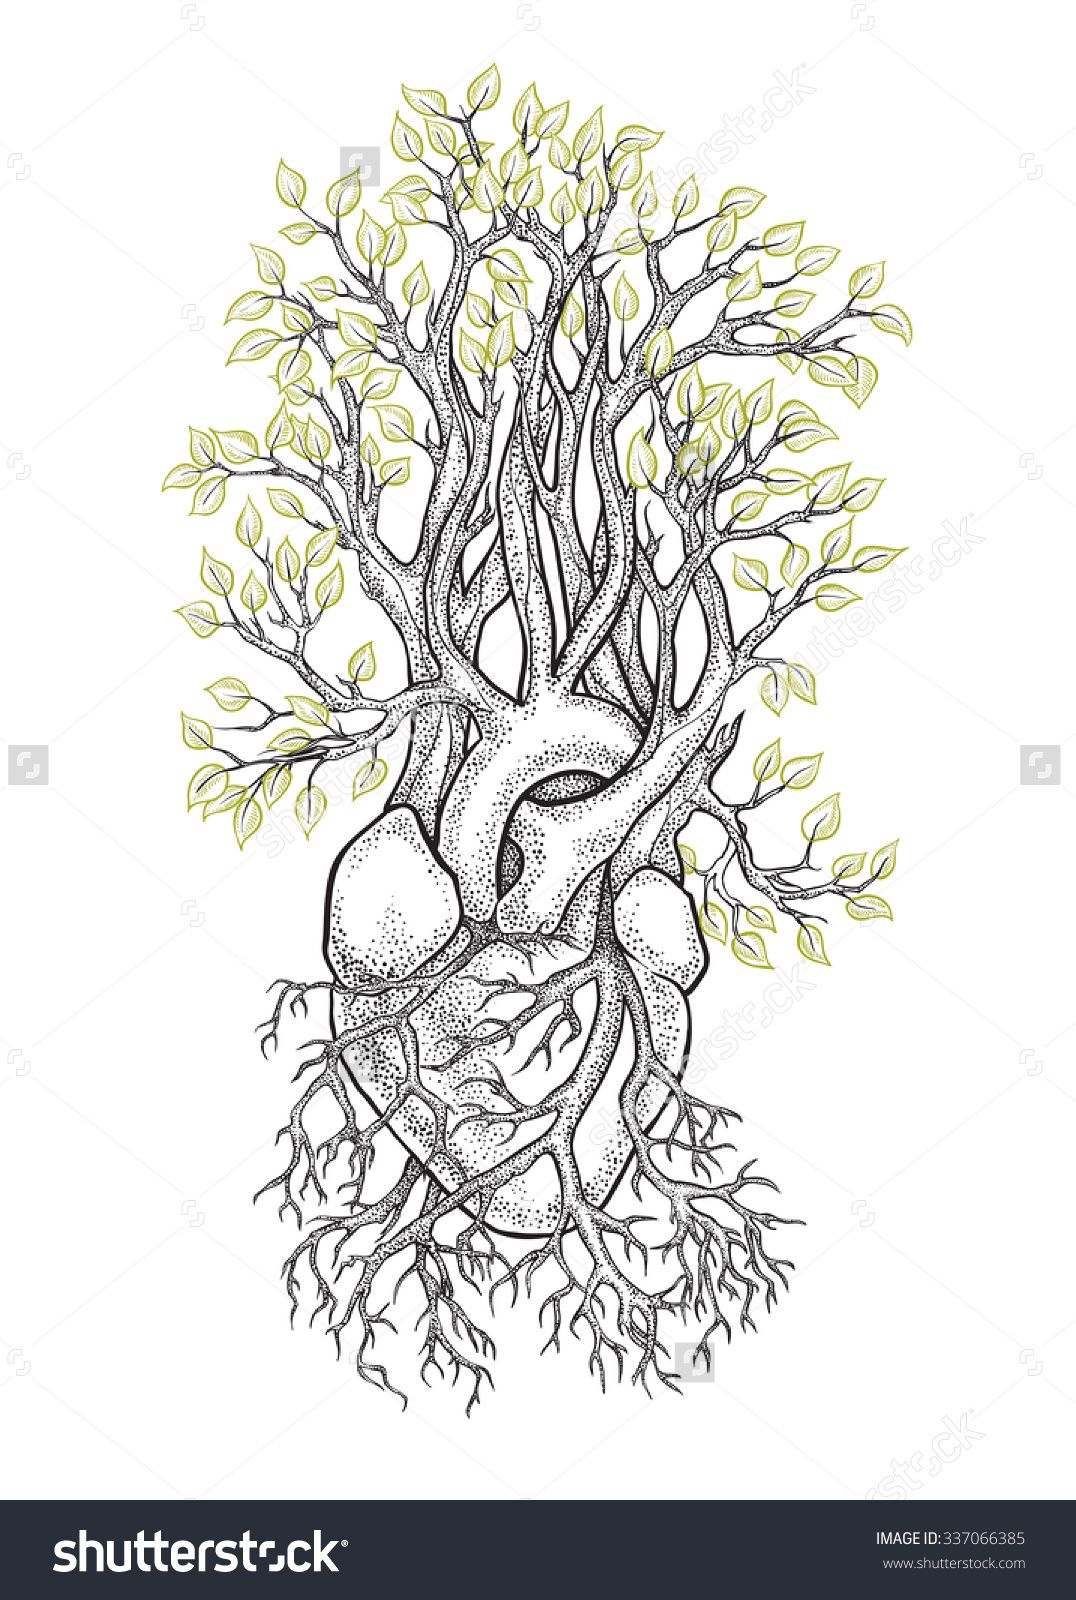 Human Anatomical Heart With Veins Like Roots From Which Grows A